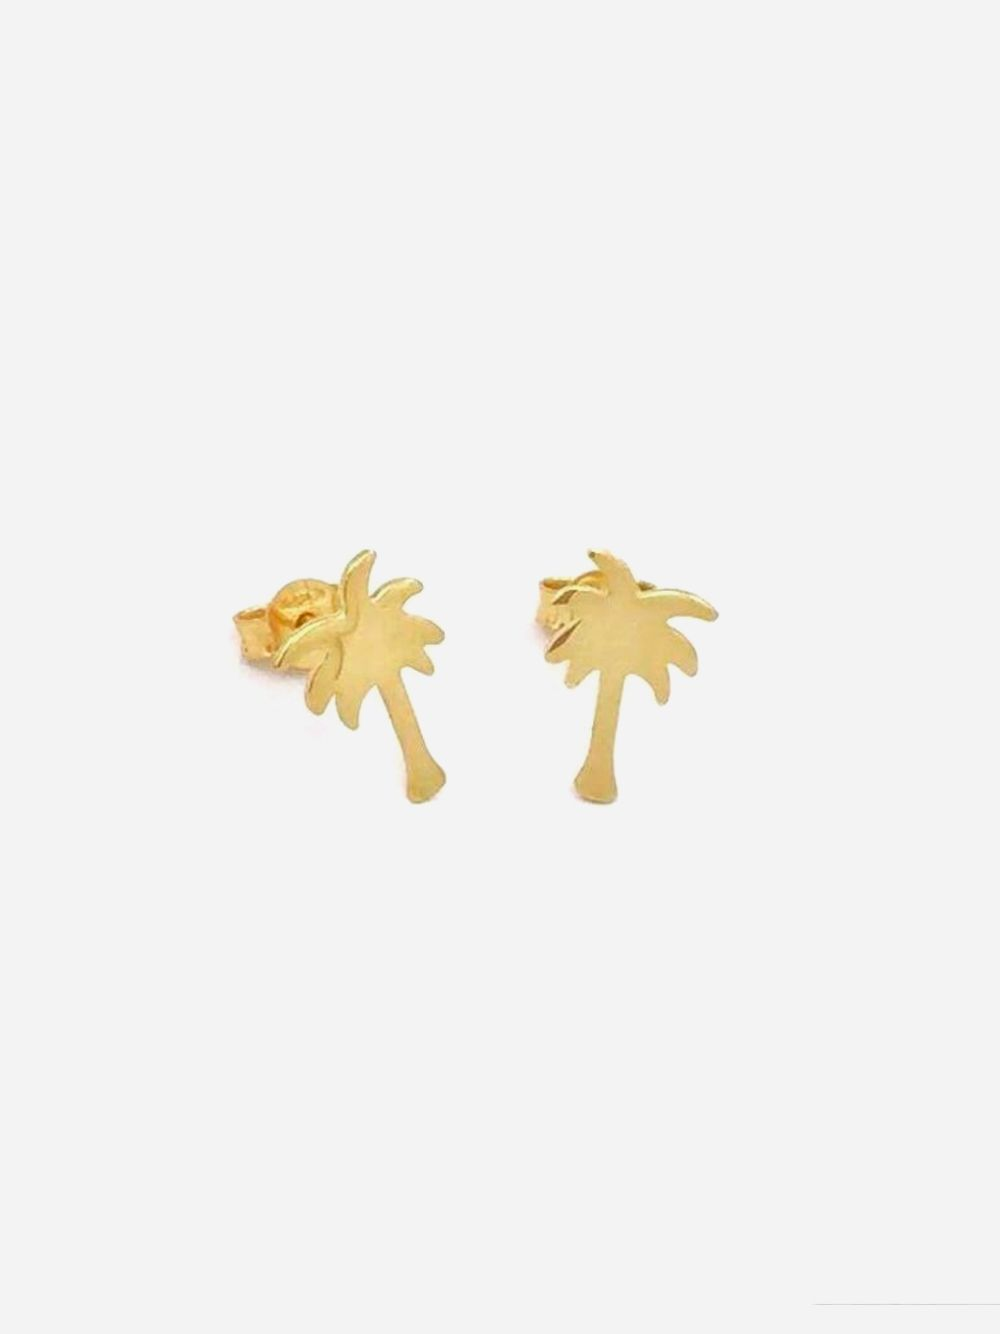 Gold Earrings Palm Tree | Made to Envy